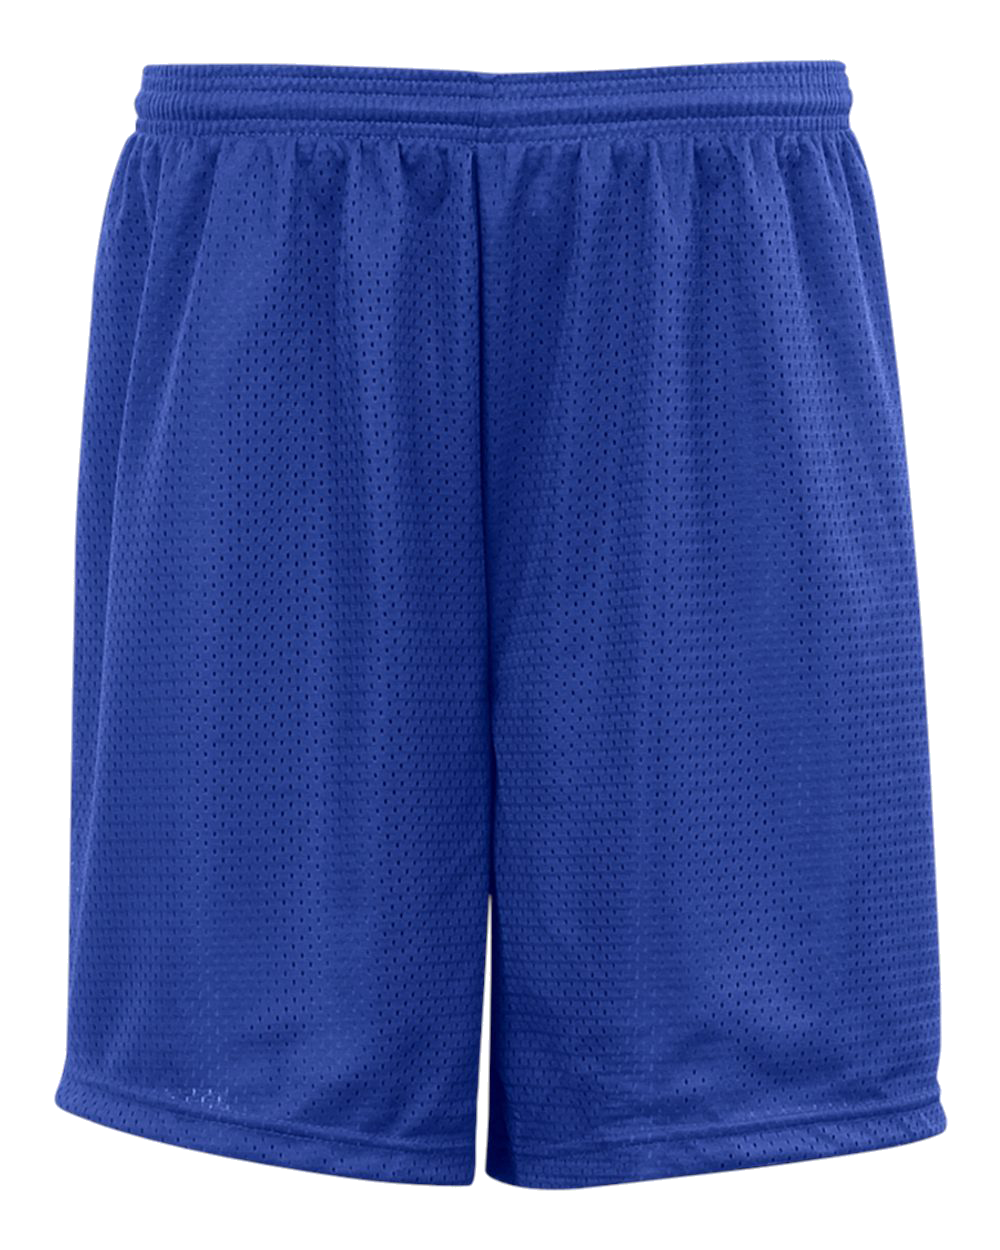 Mesh/Tricot 7 Inch Short - Royal